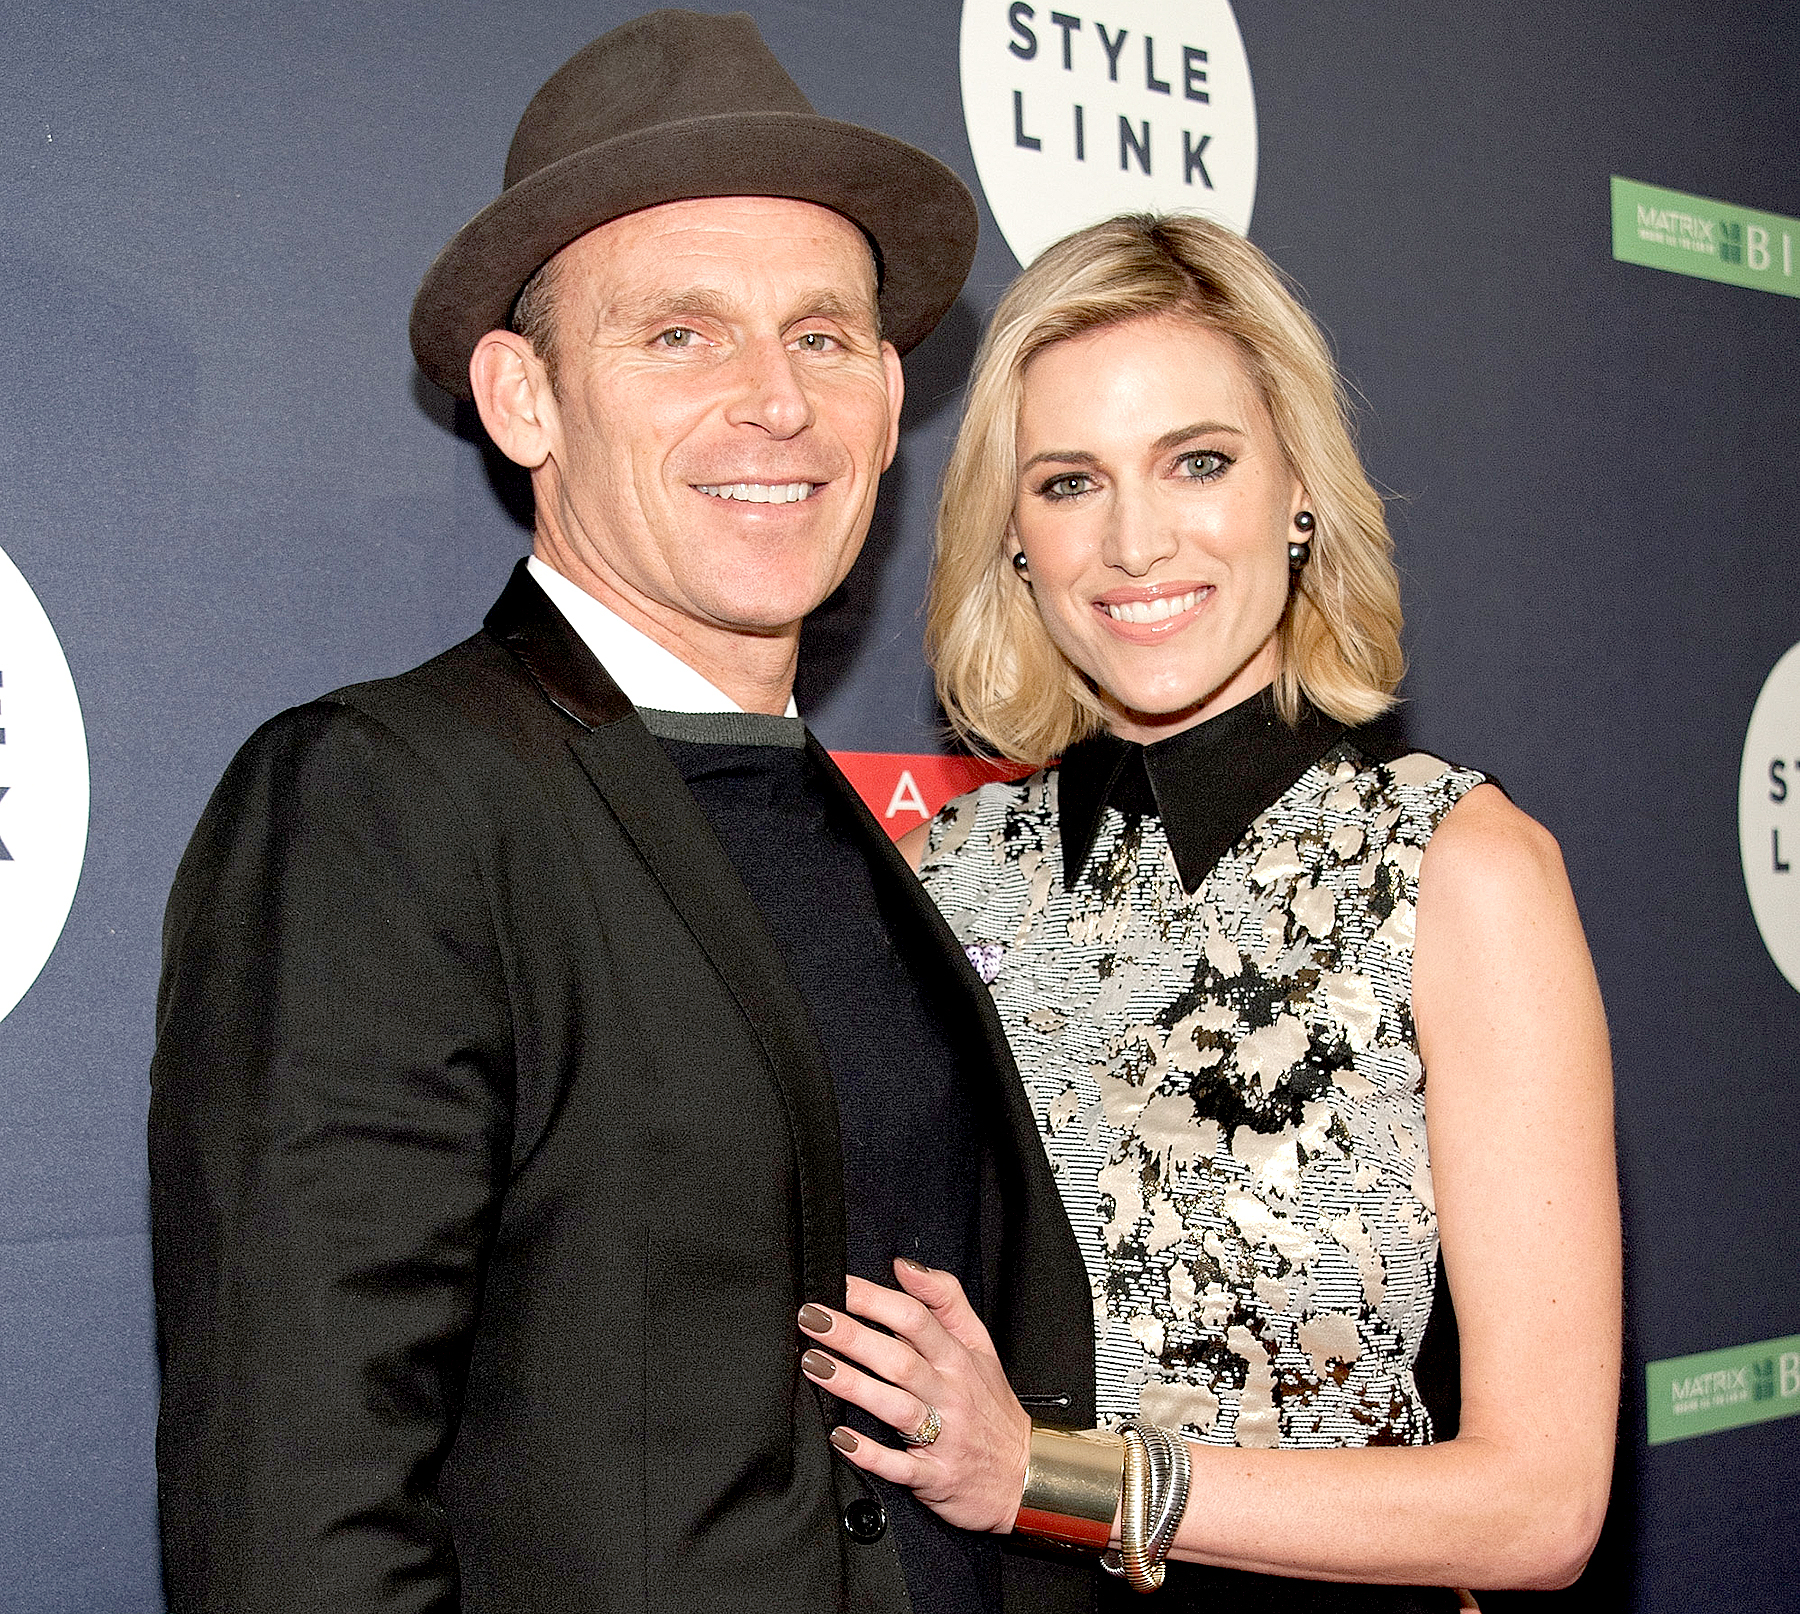 Josh Taekman and Kristen Taekman attend the Matrix Biolage Cleansing Conditioner Launch Event at Crosby Street Hotel on February 19, 2015 in New York City.